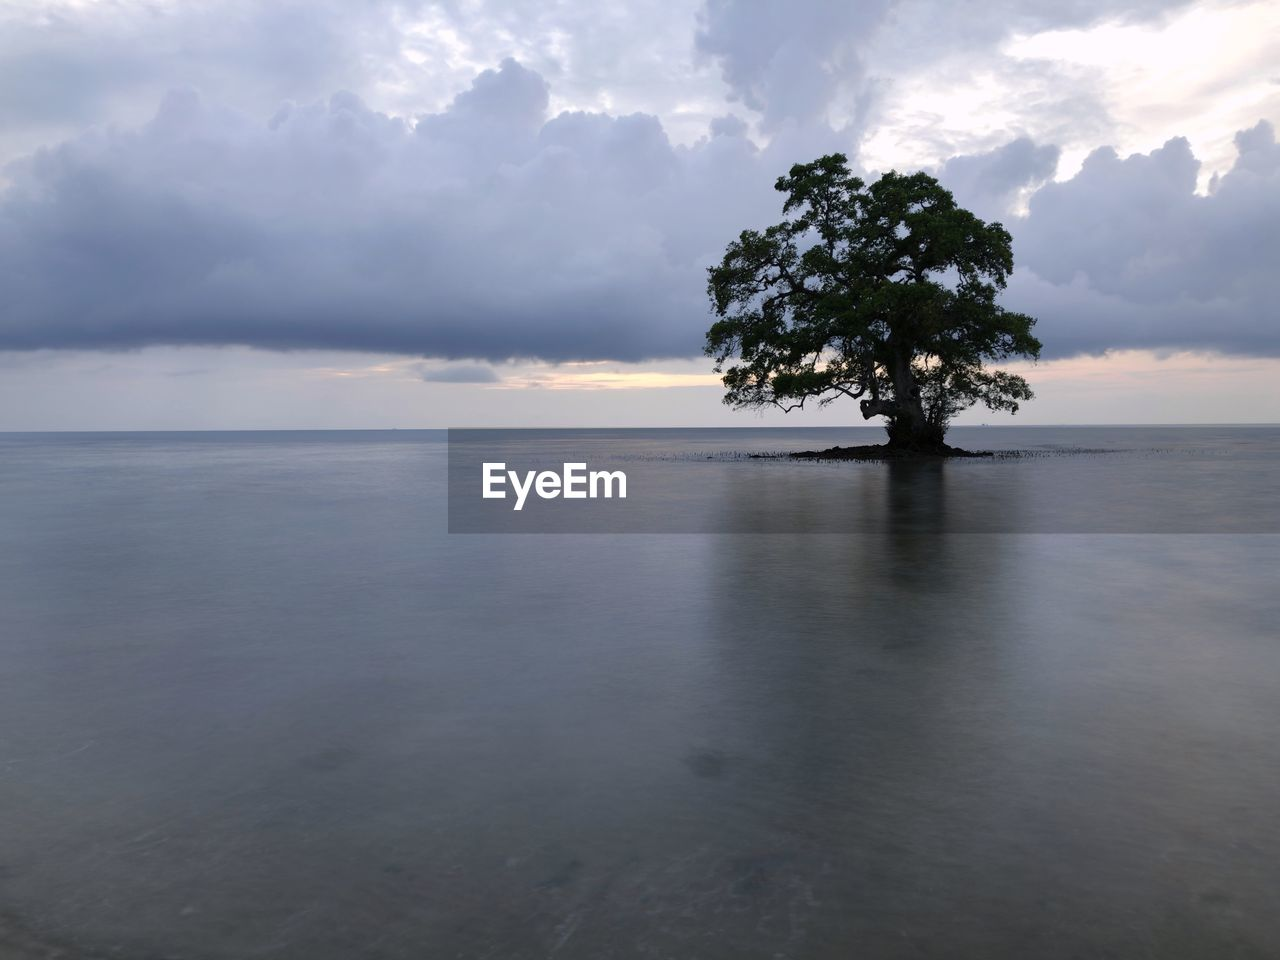 sky, water, scenics - nature, cloud - sky, sea, tranquility, tranquil scene, beauty in nature, tree, horizon over water, horizon, nature, no people, plant, land, waterfront, idyllic, non-urban scene, beach, outdoors